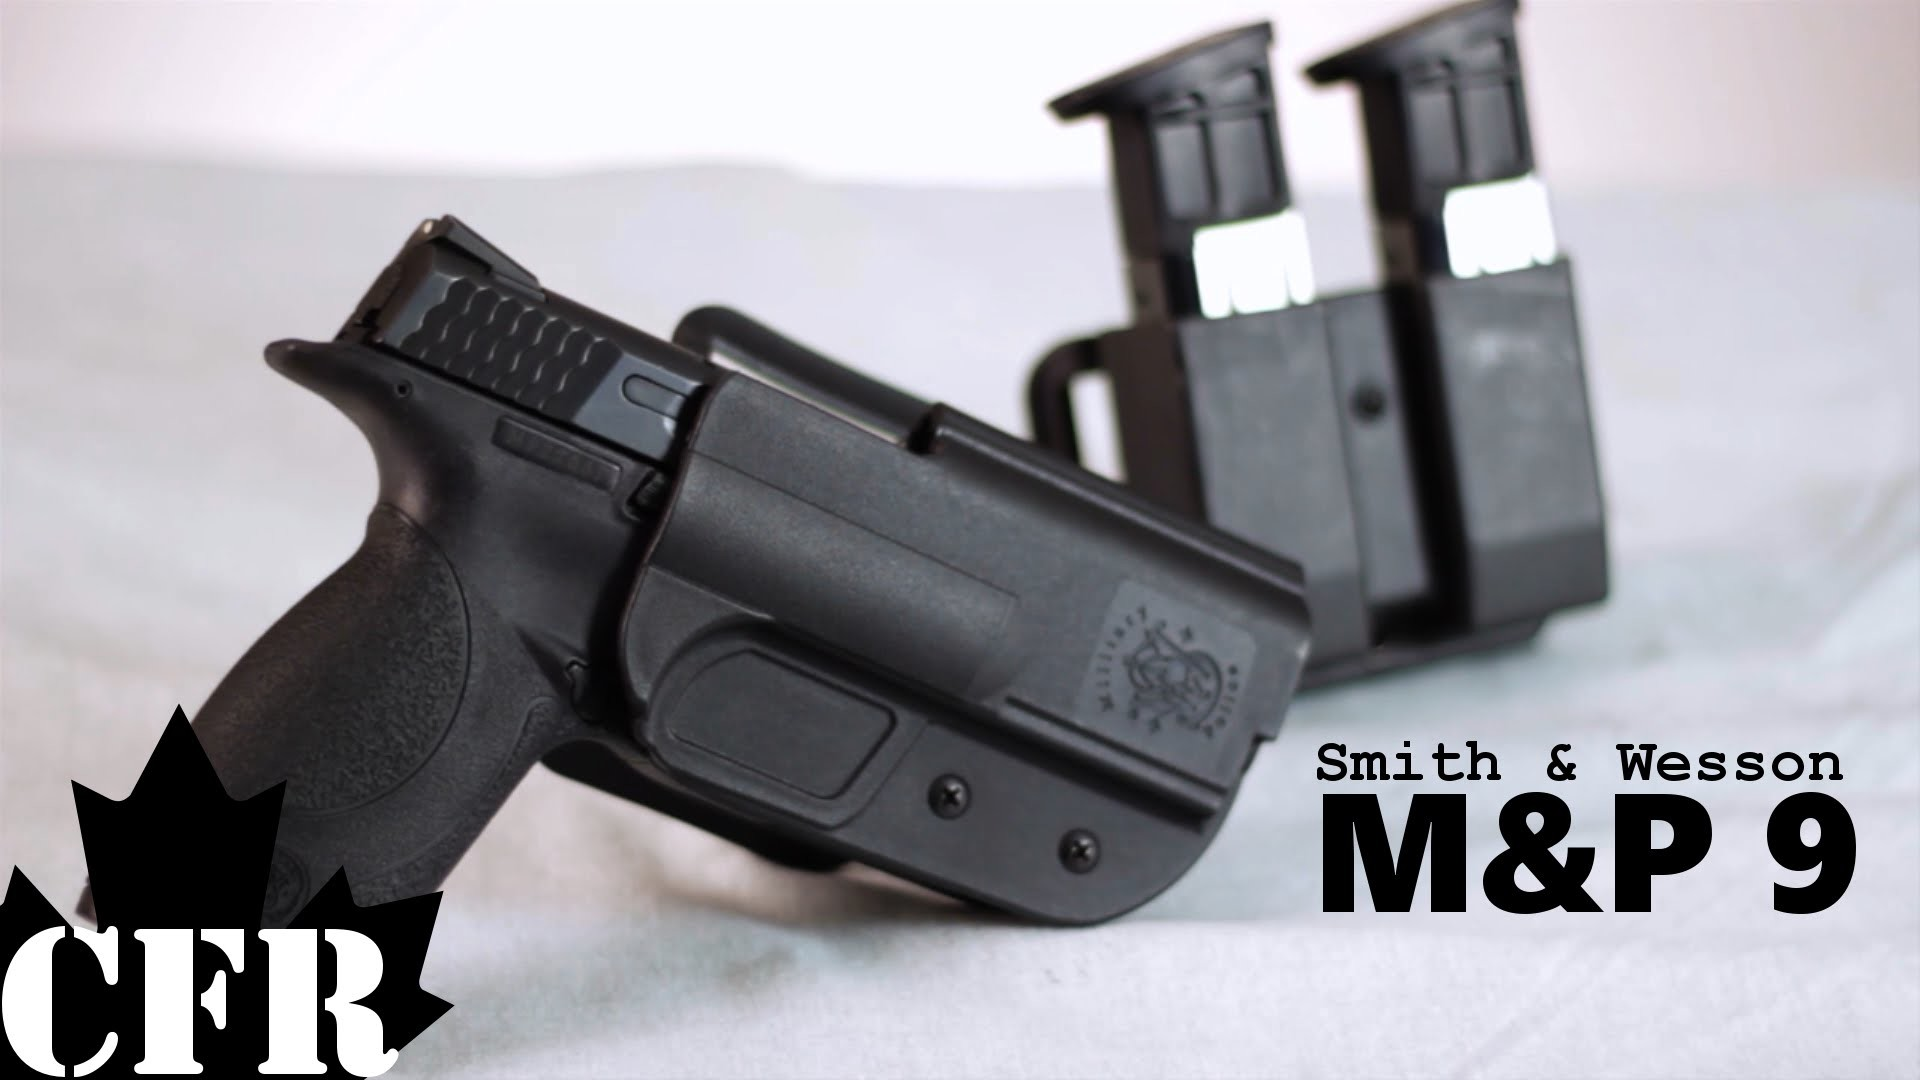 1920x1080 Smith & Wesson M&P 9mm Review